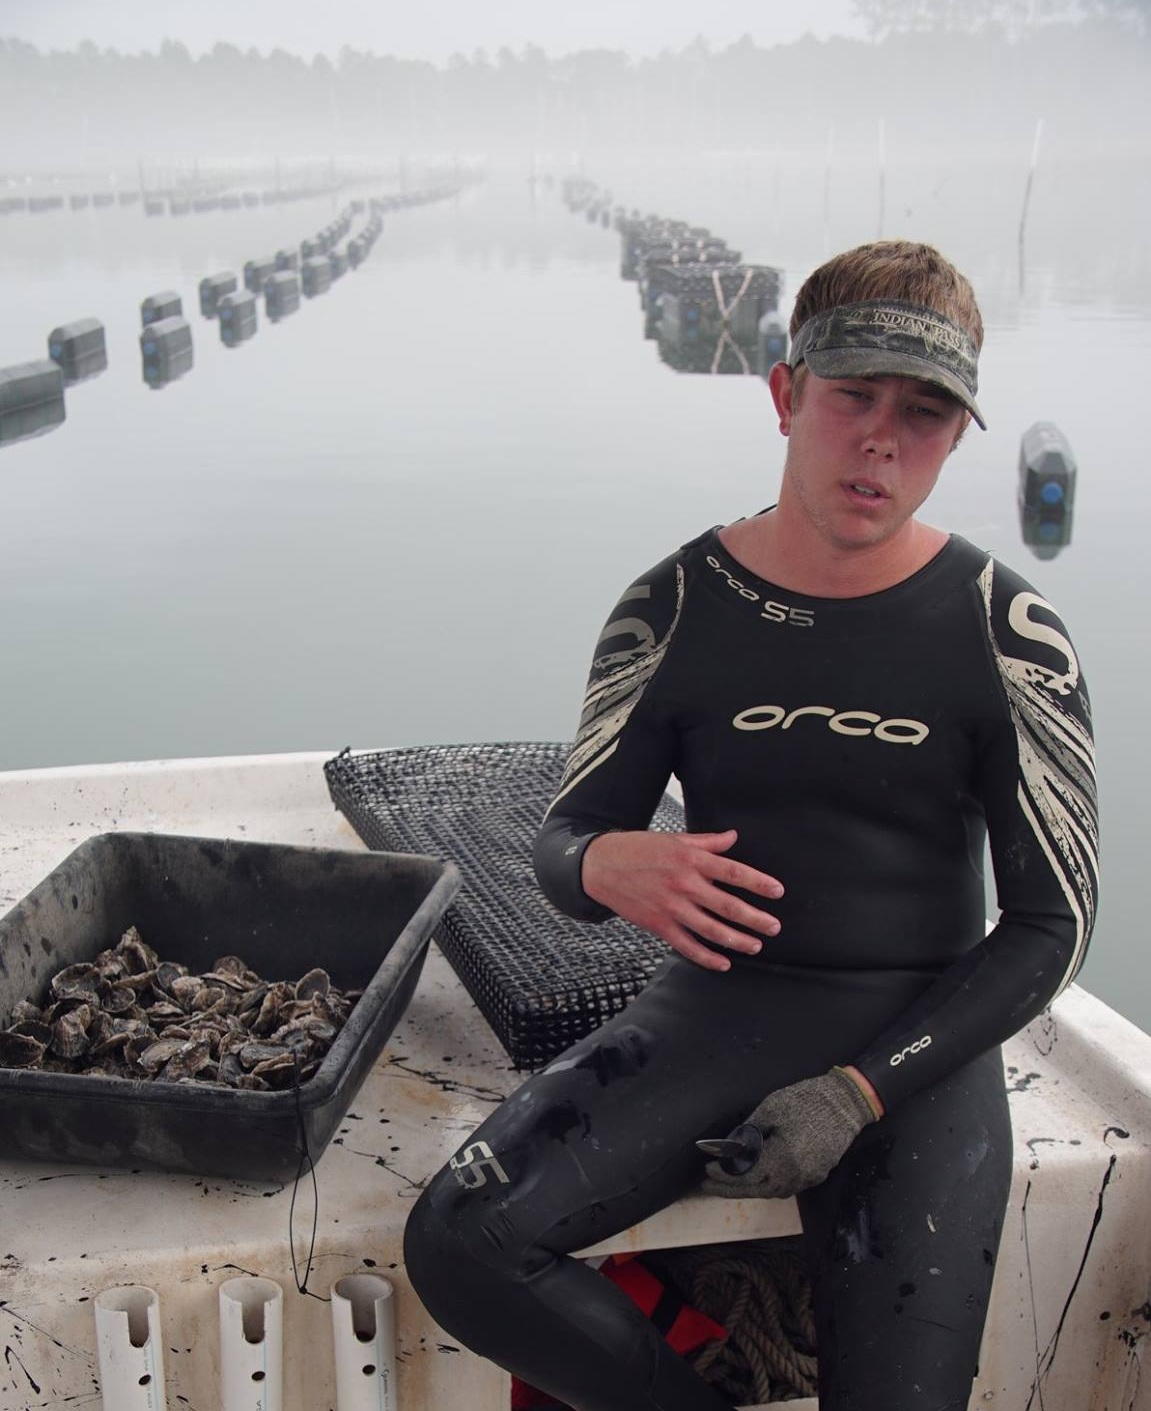 Reid, the Founder of Oyster Boss. Source: Burns Images.